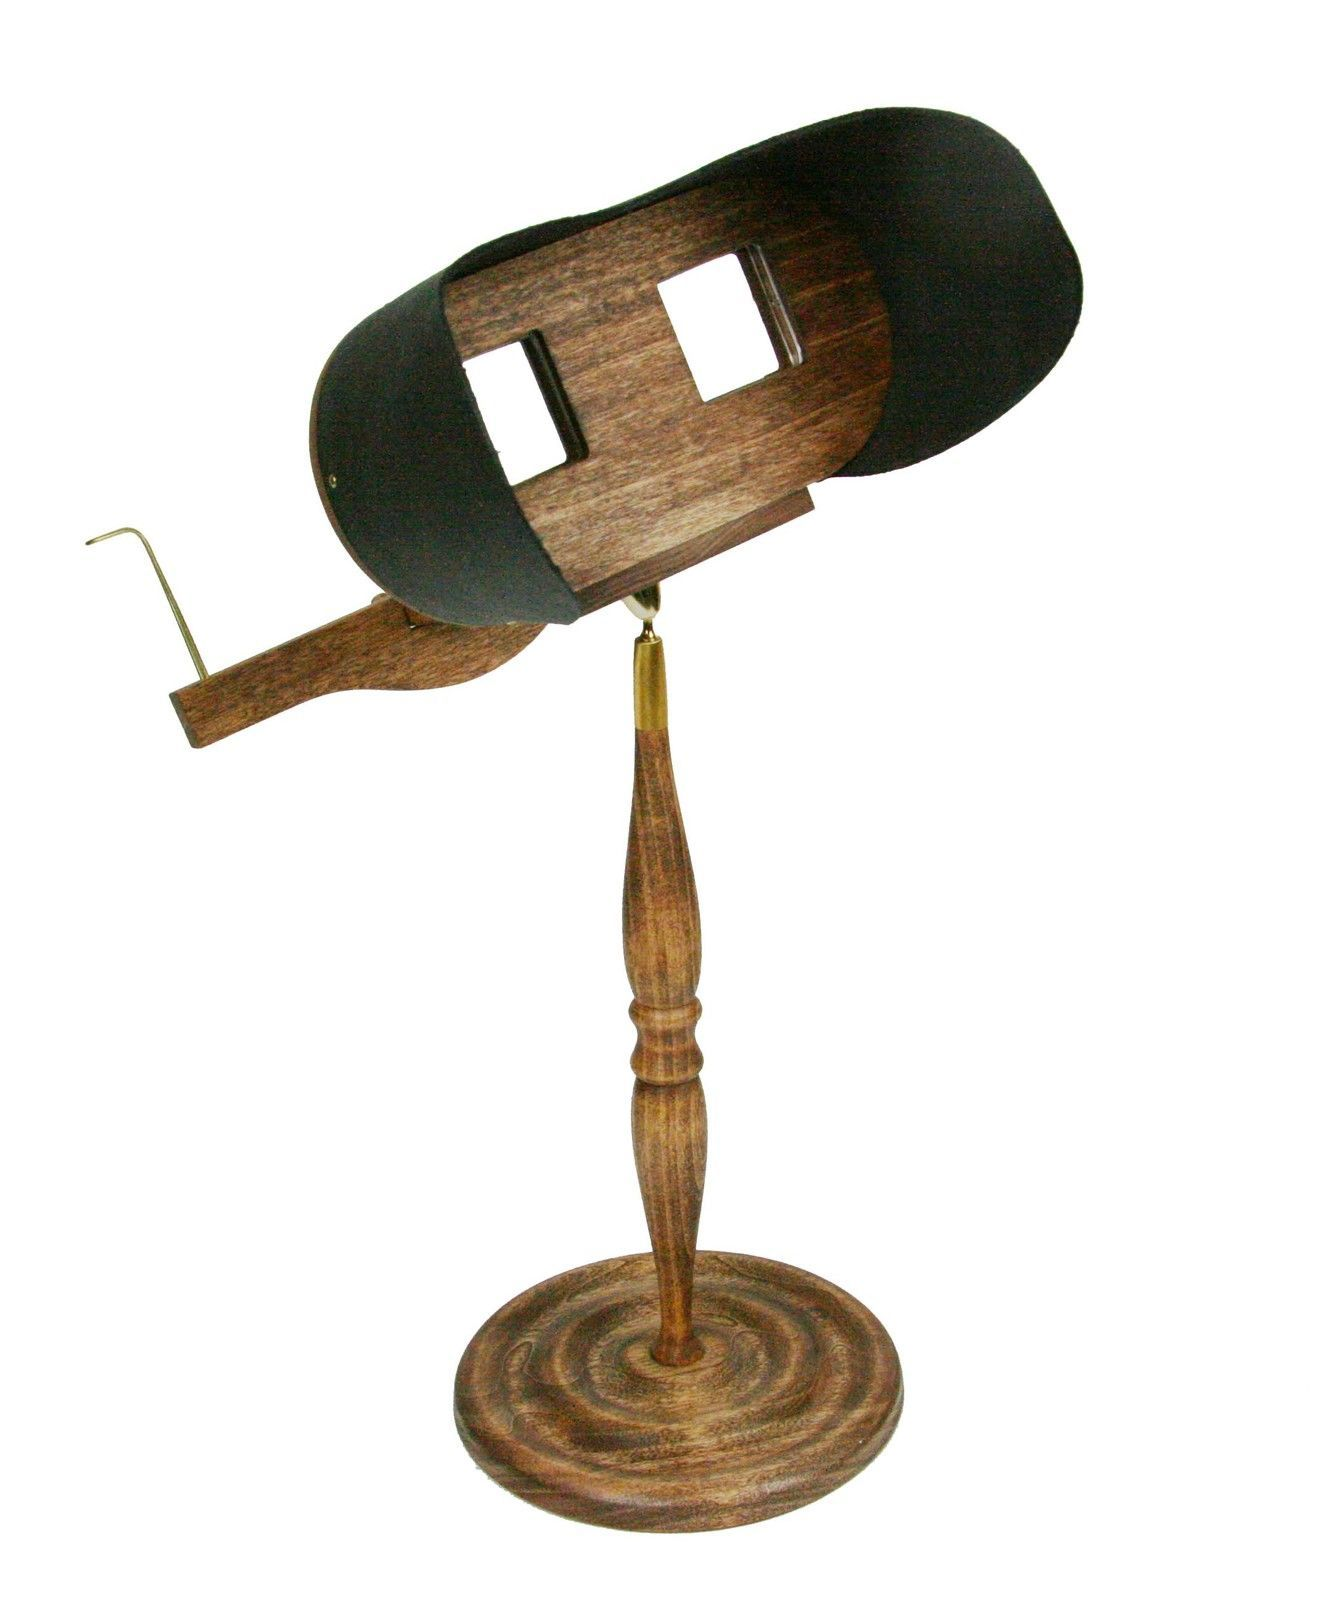 Stereoscope Holmes Viewer With Pedestal Kit For Stereocards And